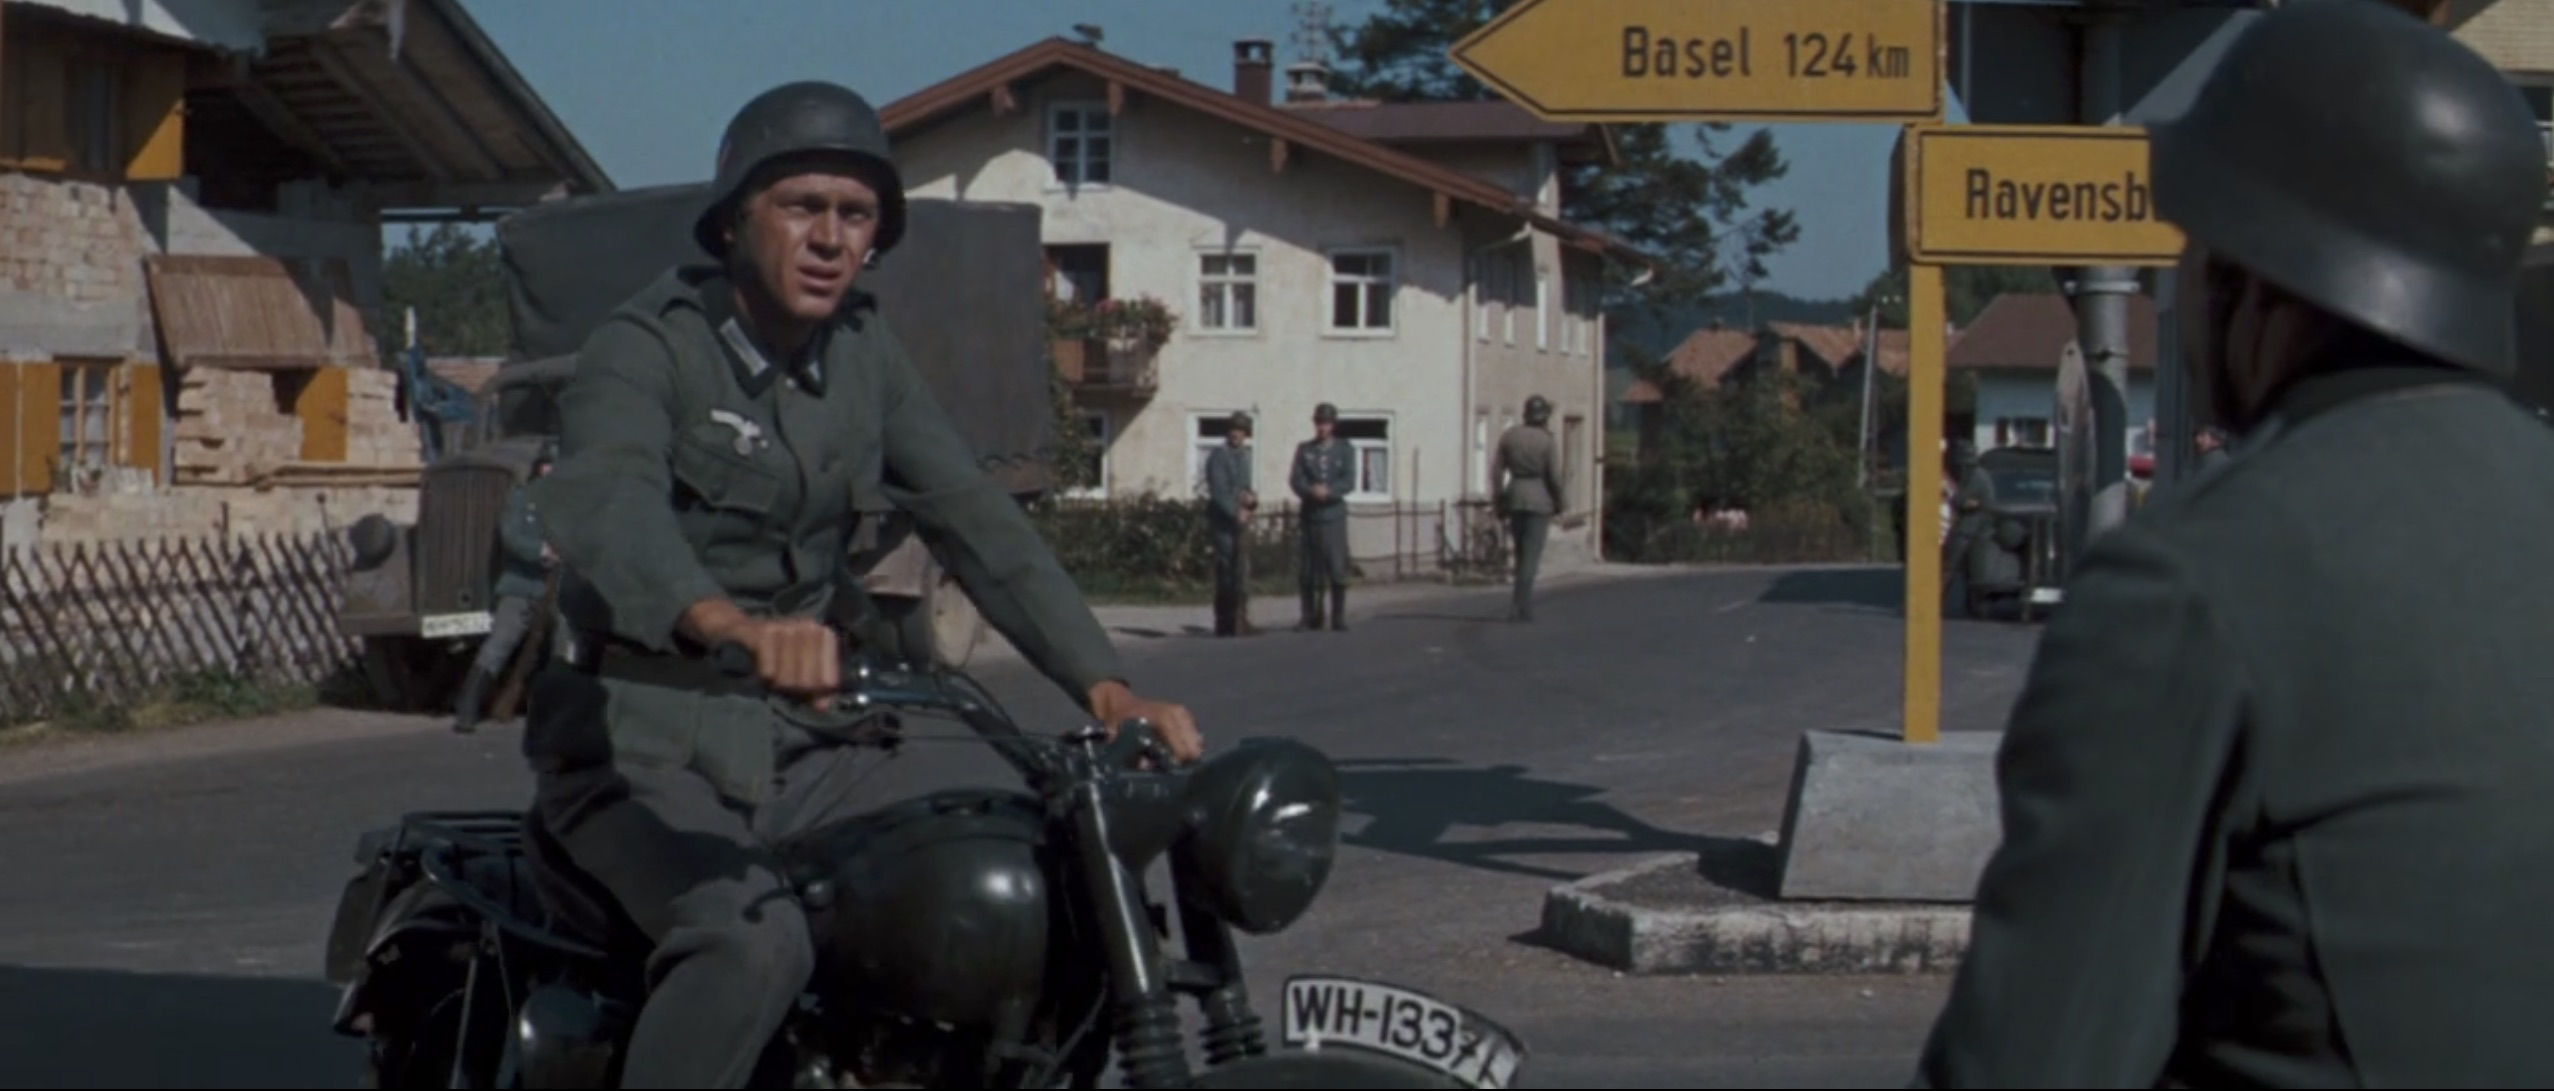 The Great Escape steve mcqueen disguise